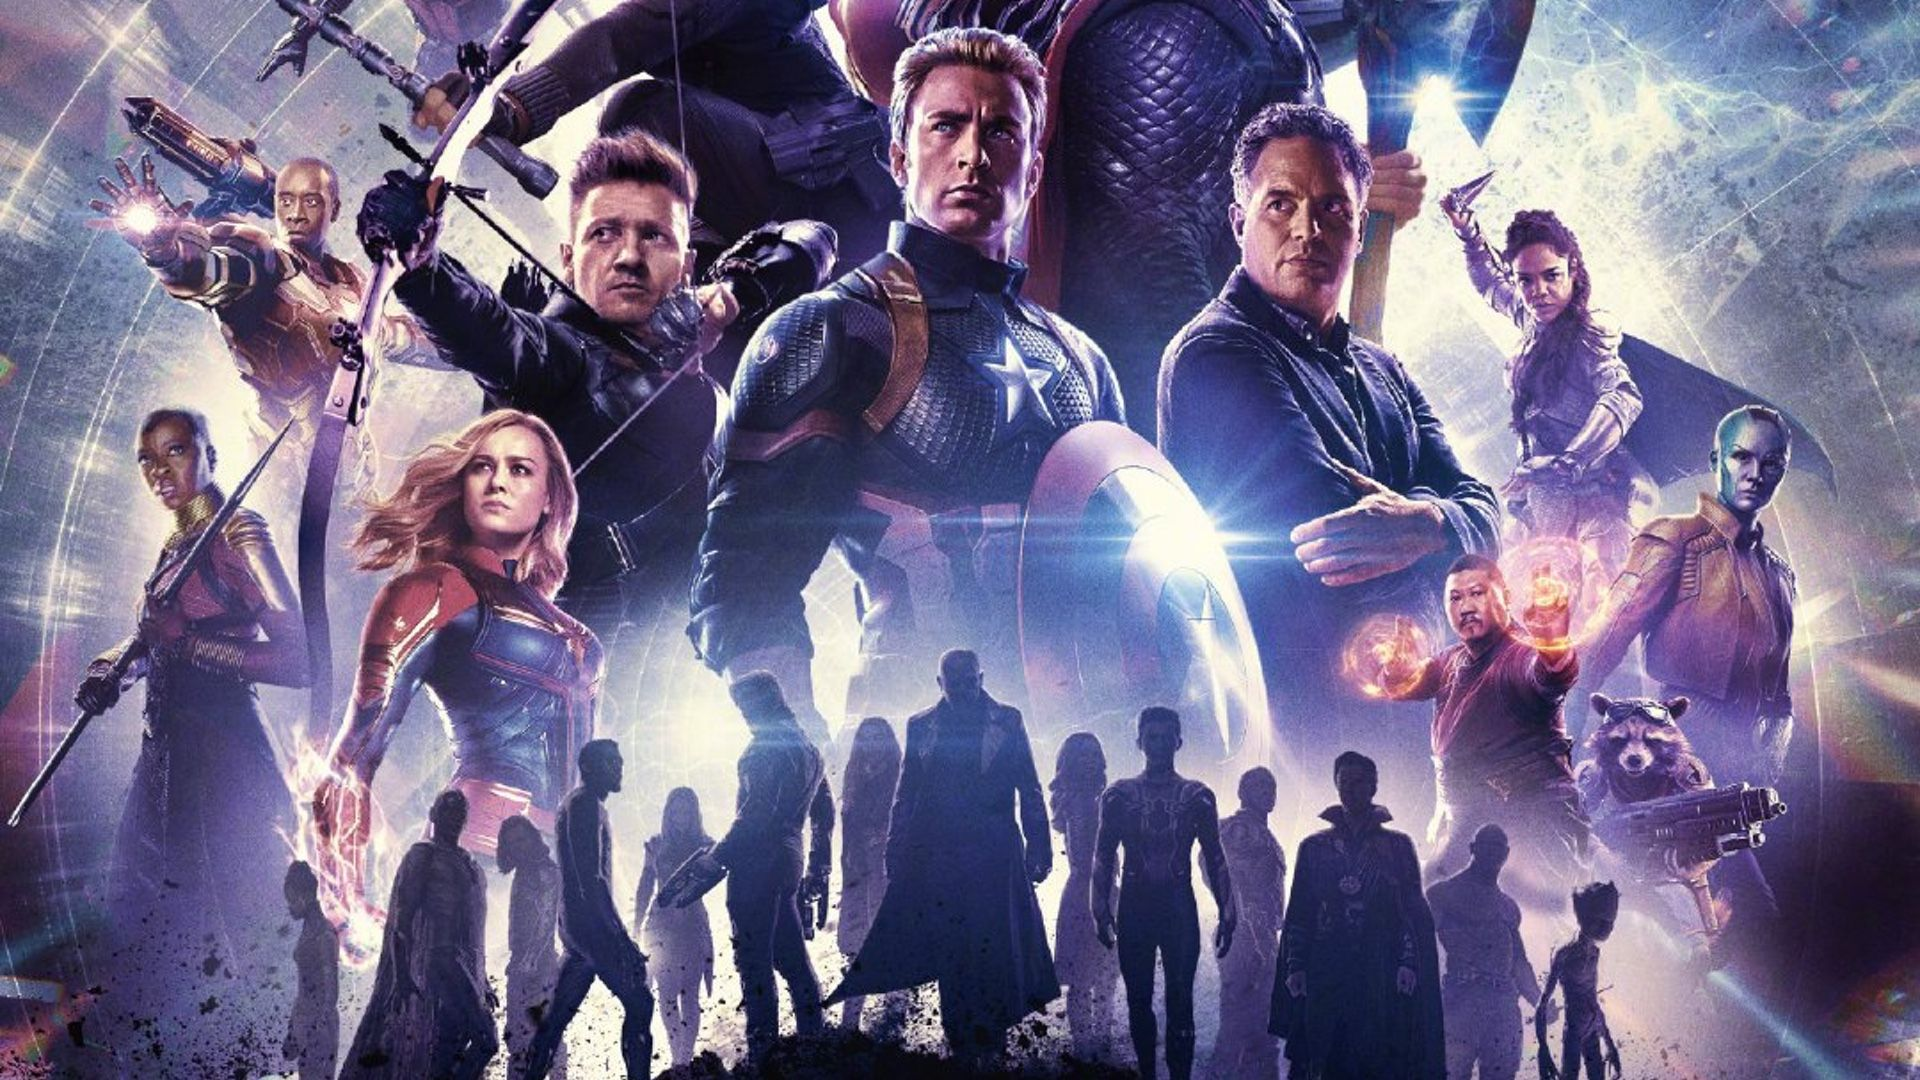 Theater Hilariously Improvises Poster For Avengers Endgame Geektyrant